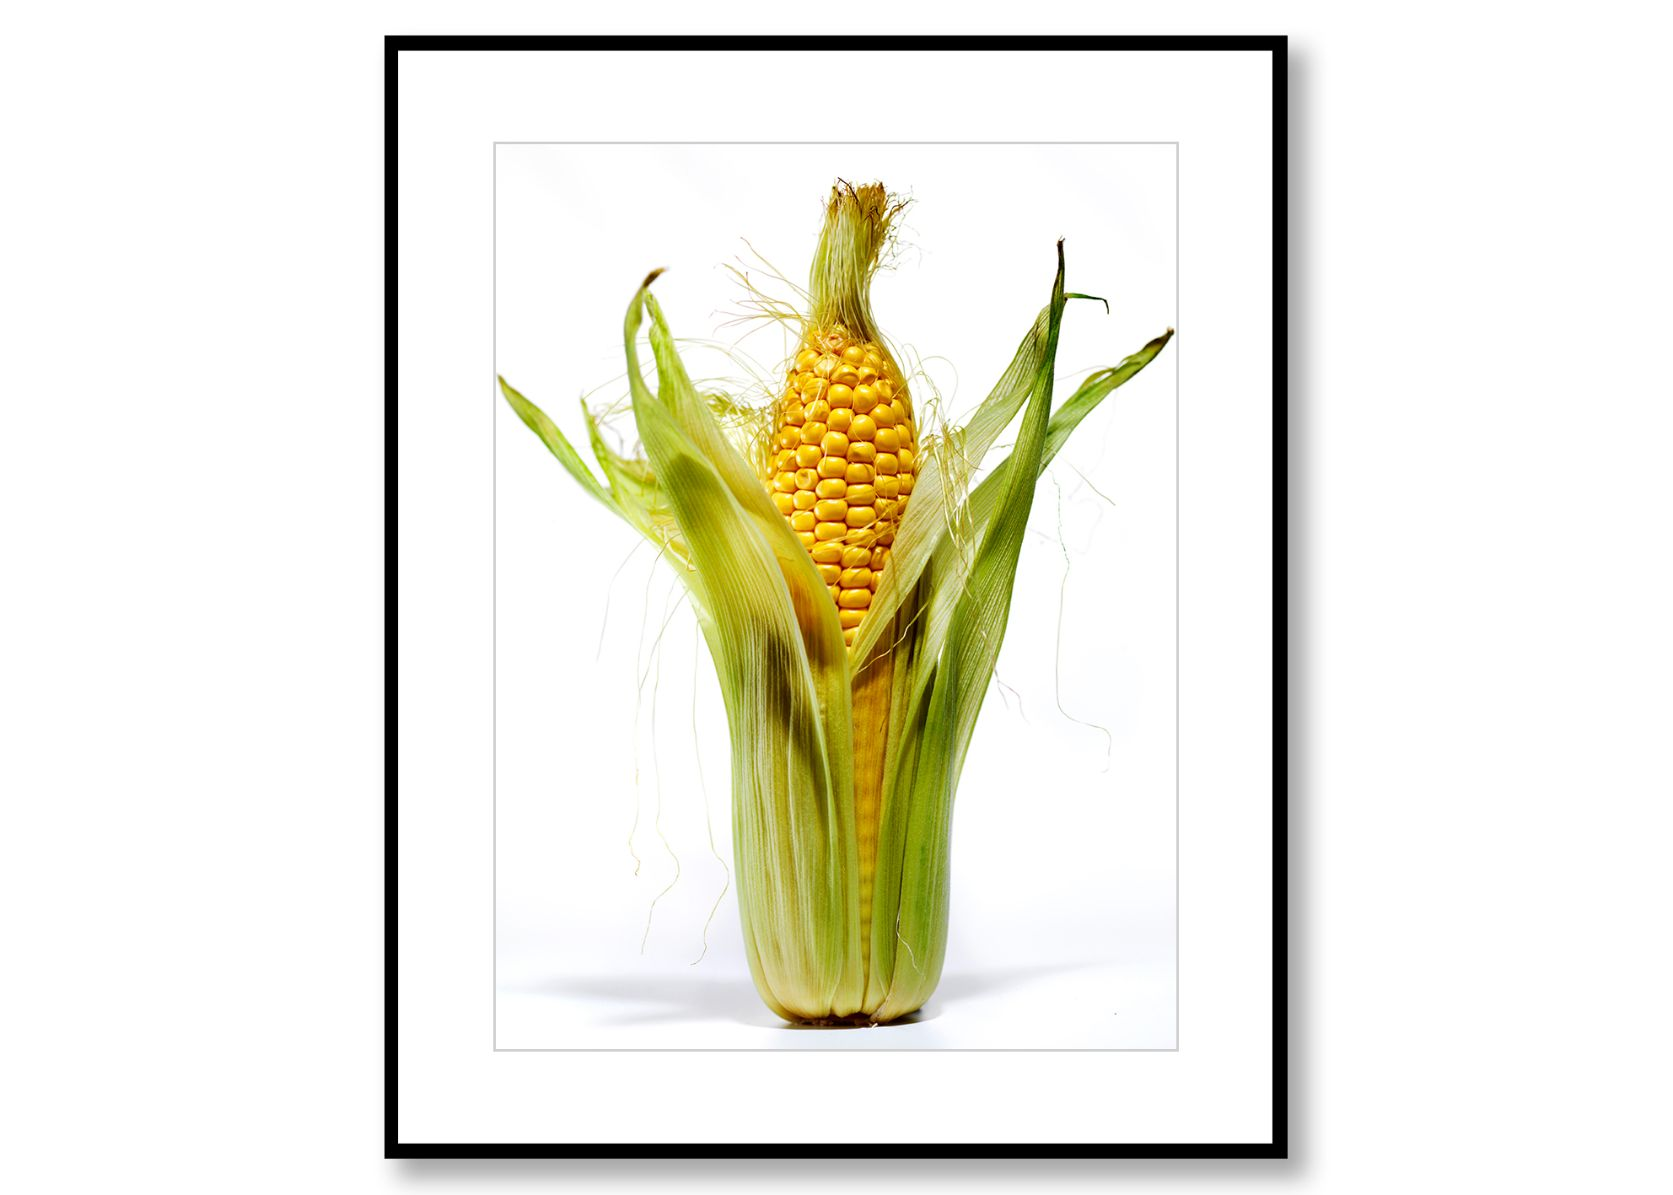 Corn. Food Art. Prints for sale. Photo by Fredrik Rege